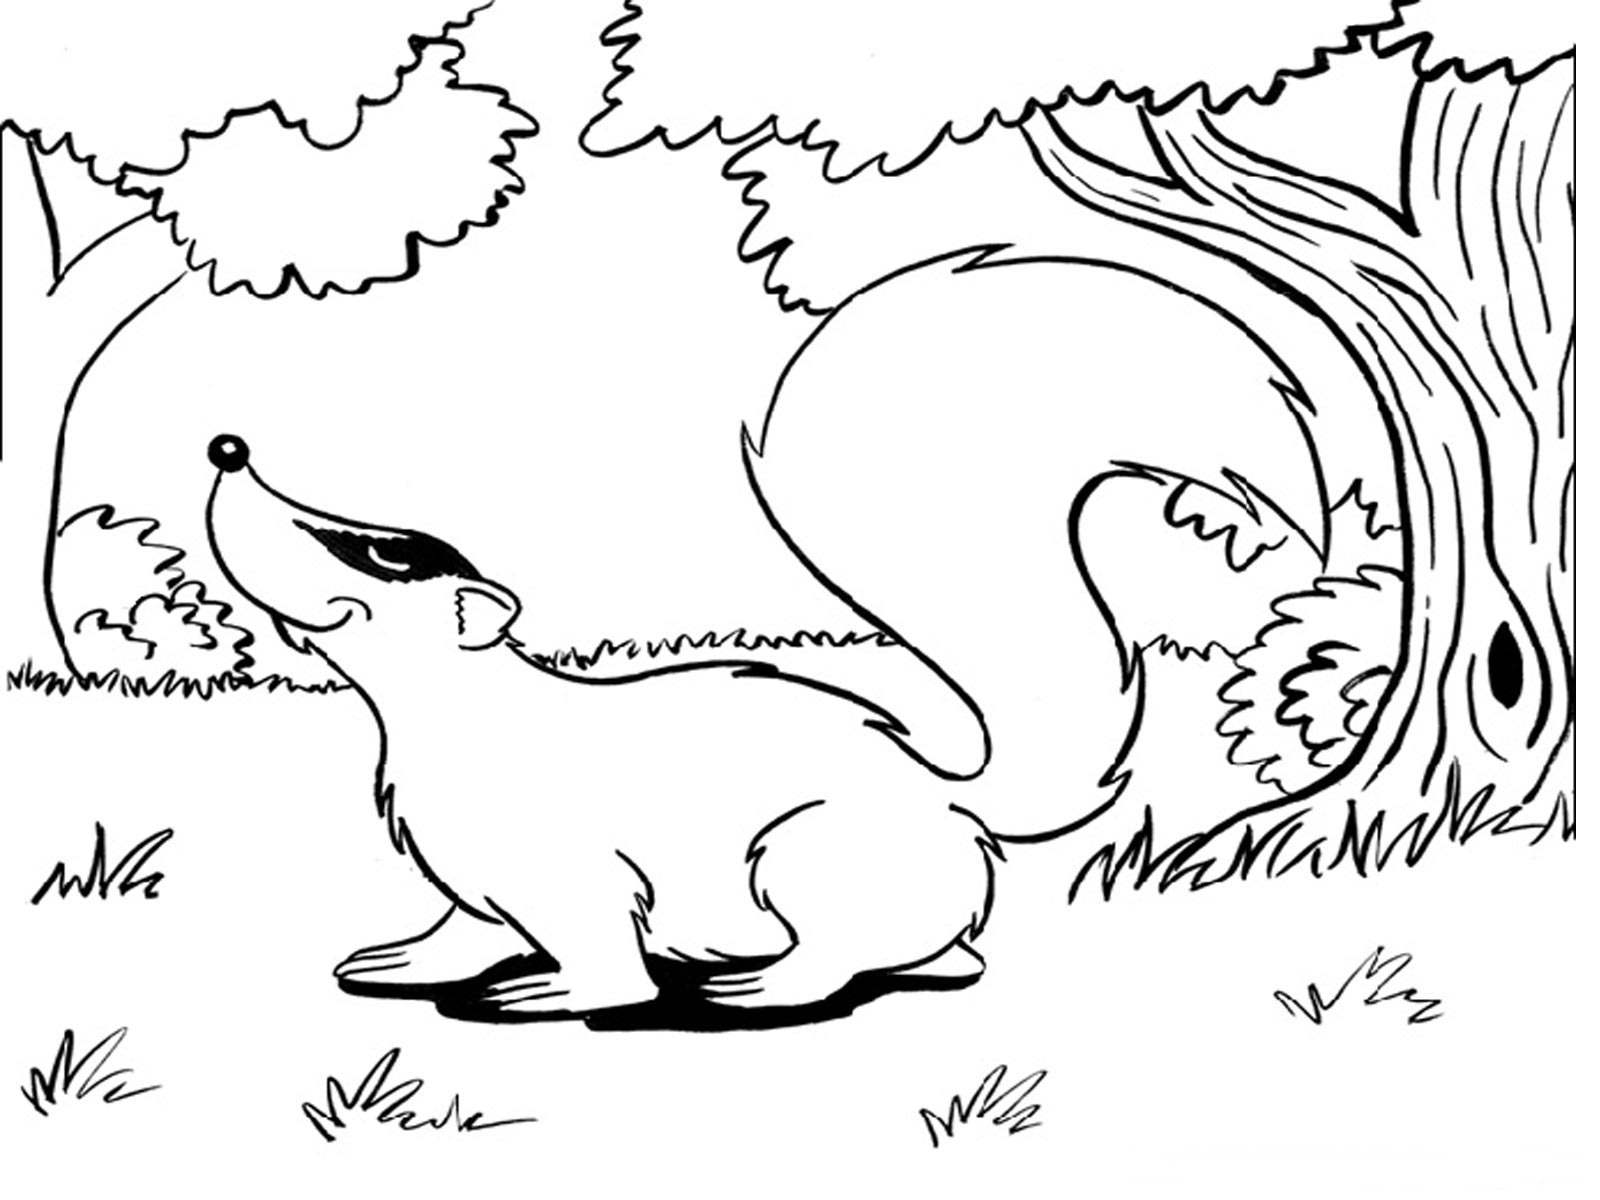 Childrens coloring pages animals - Free Printable Squirrel Coloring Pages For Kids